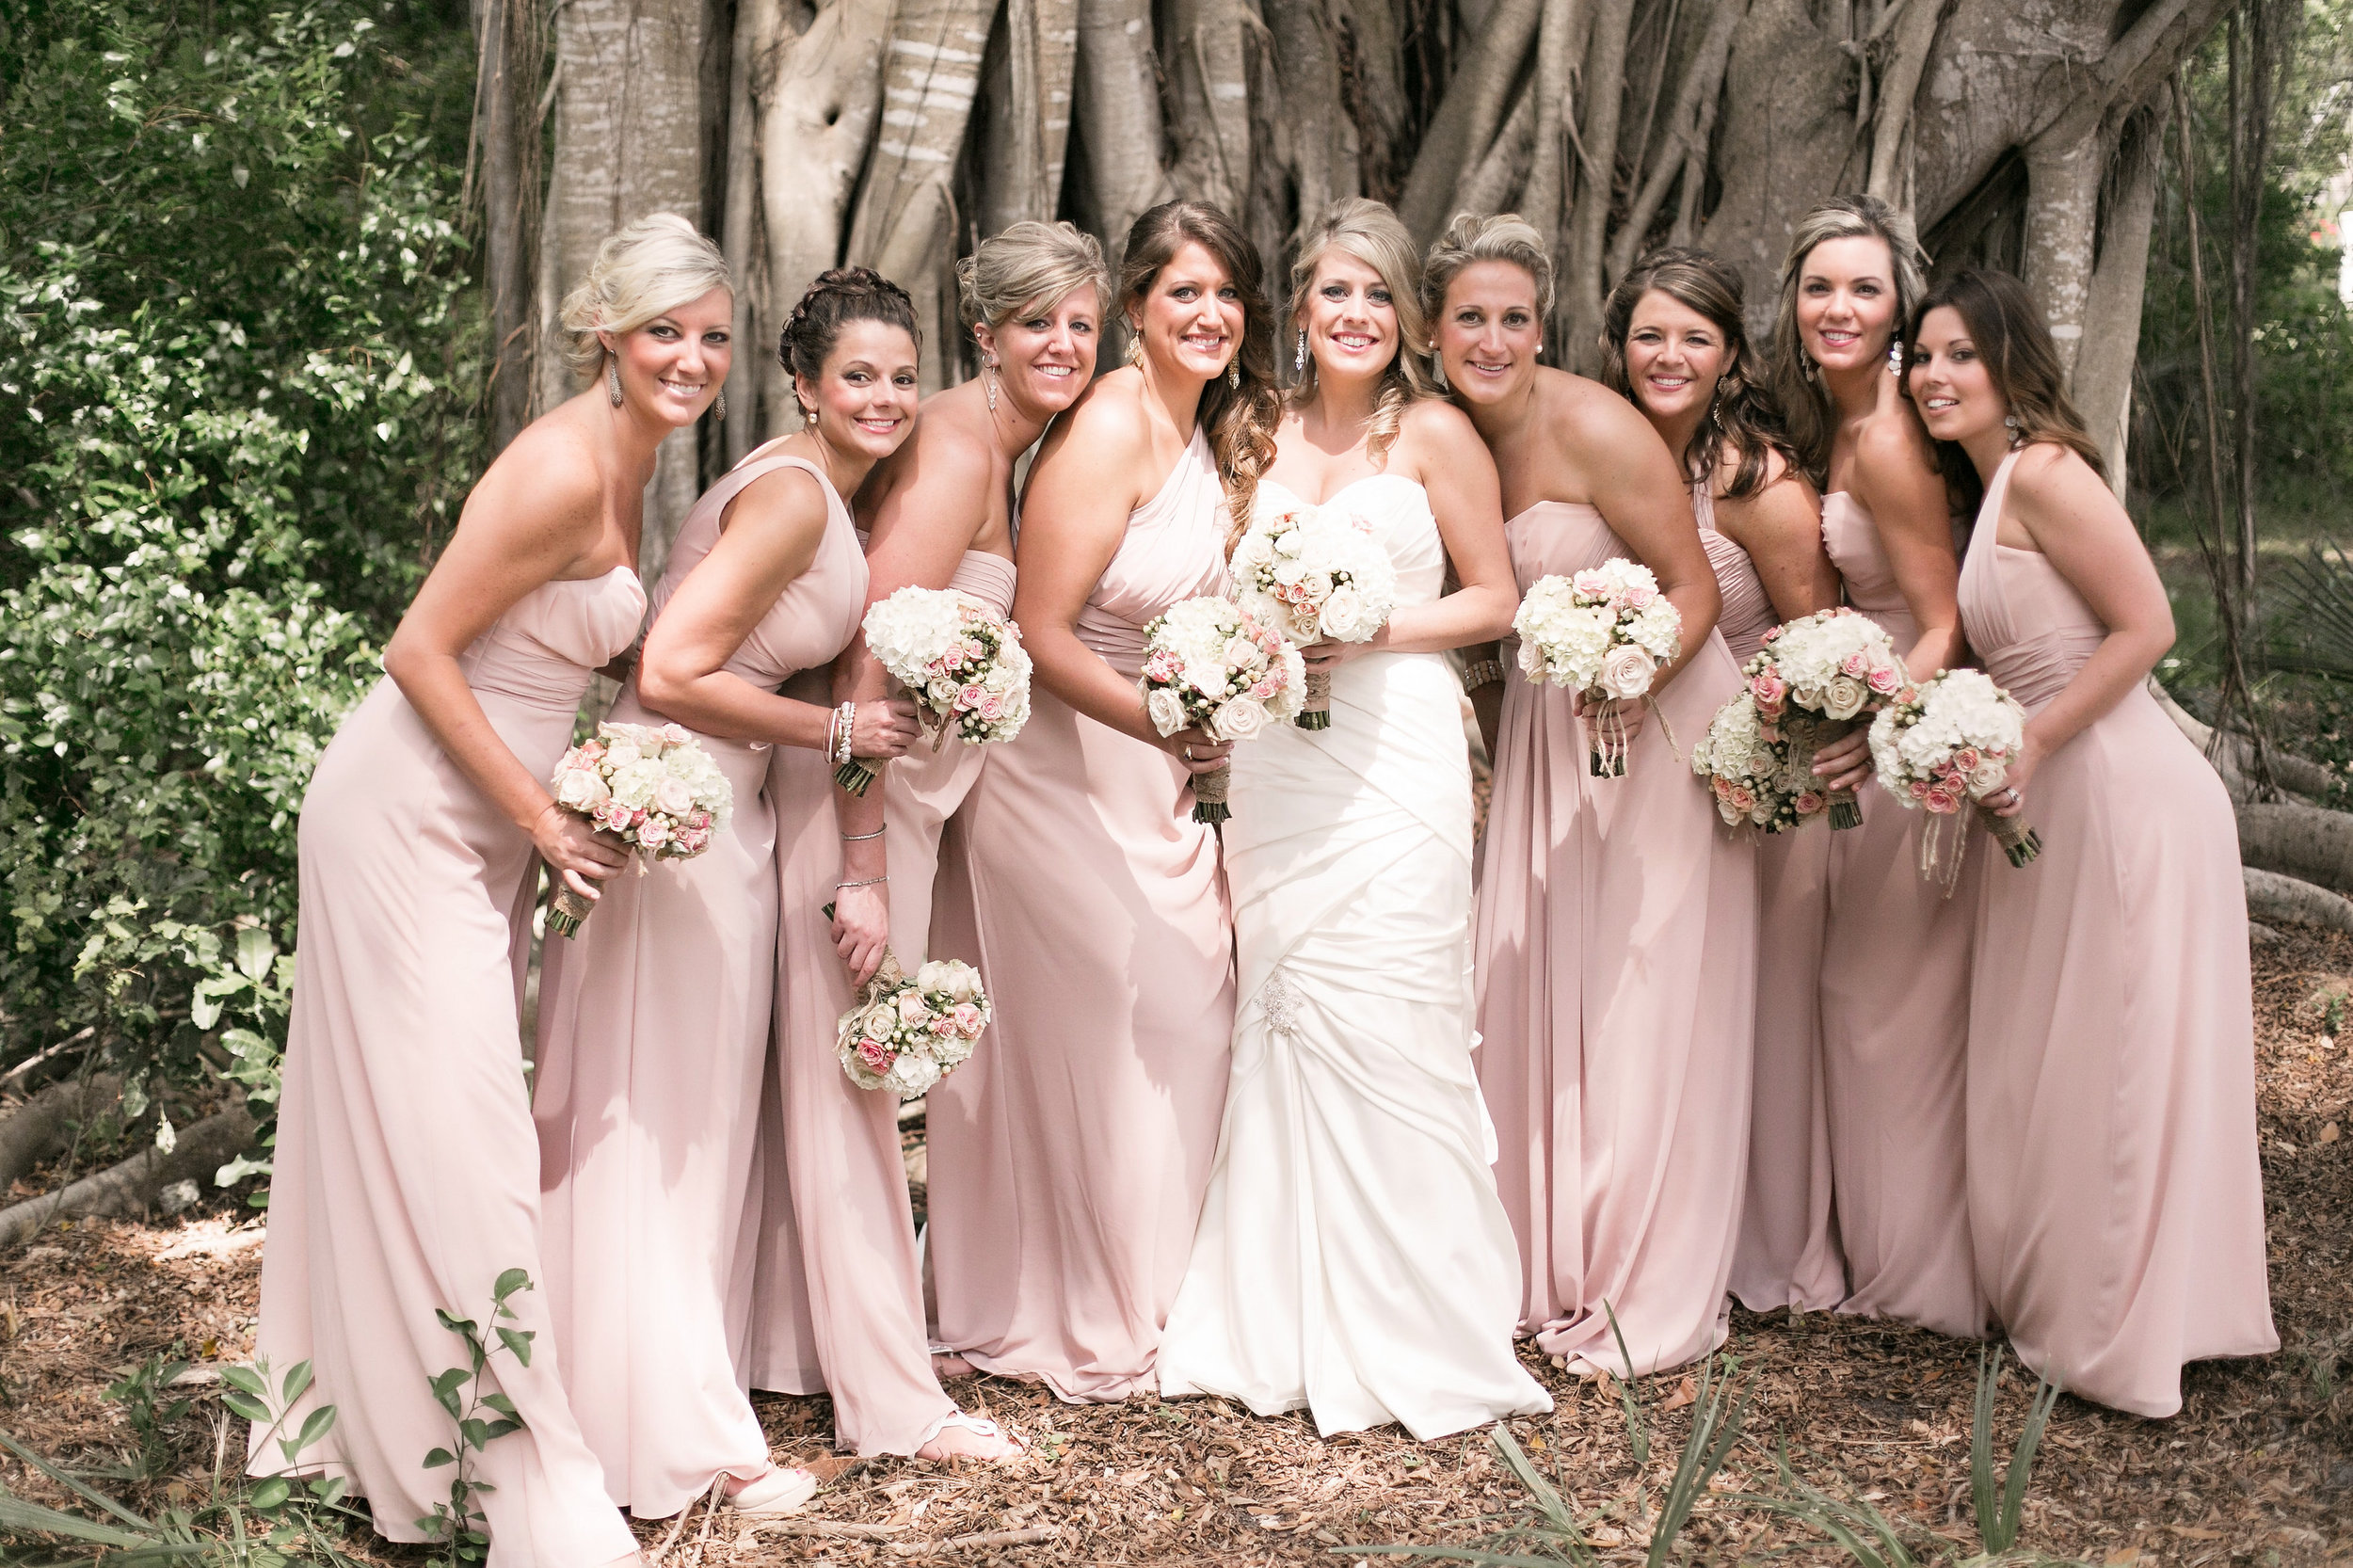 Bridesmaids wore blush hued crinkle chiffon gowns and carried bouquets of white hydrangea and blush roses